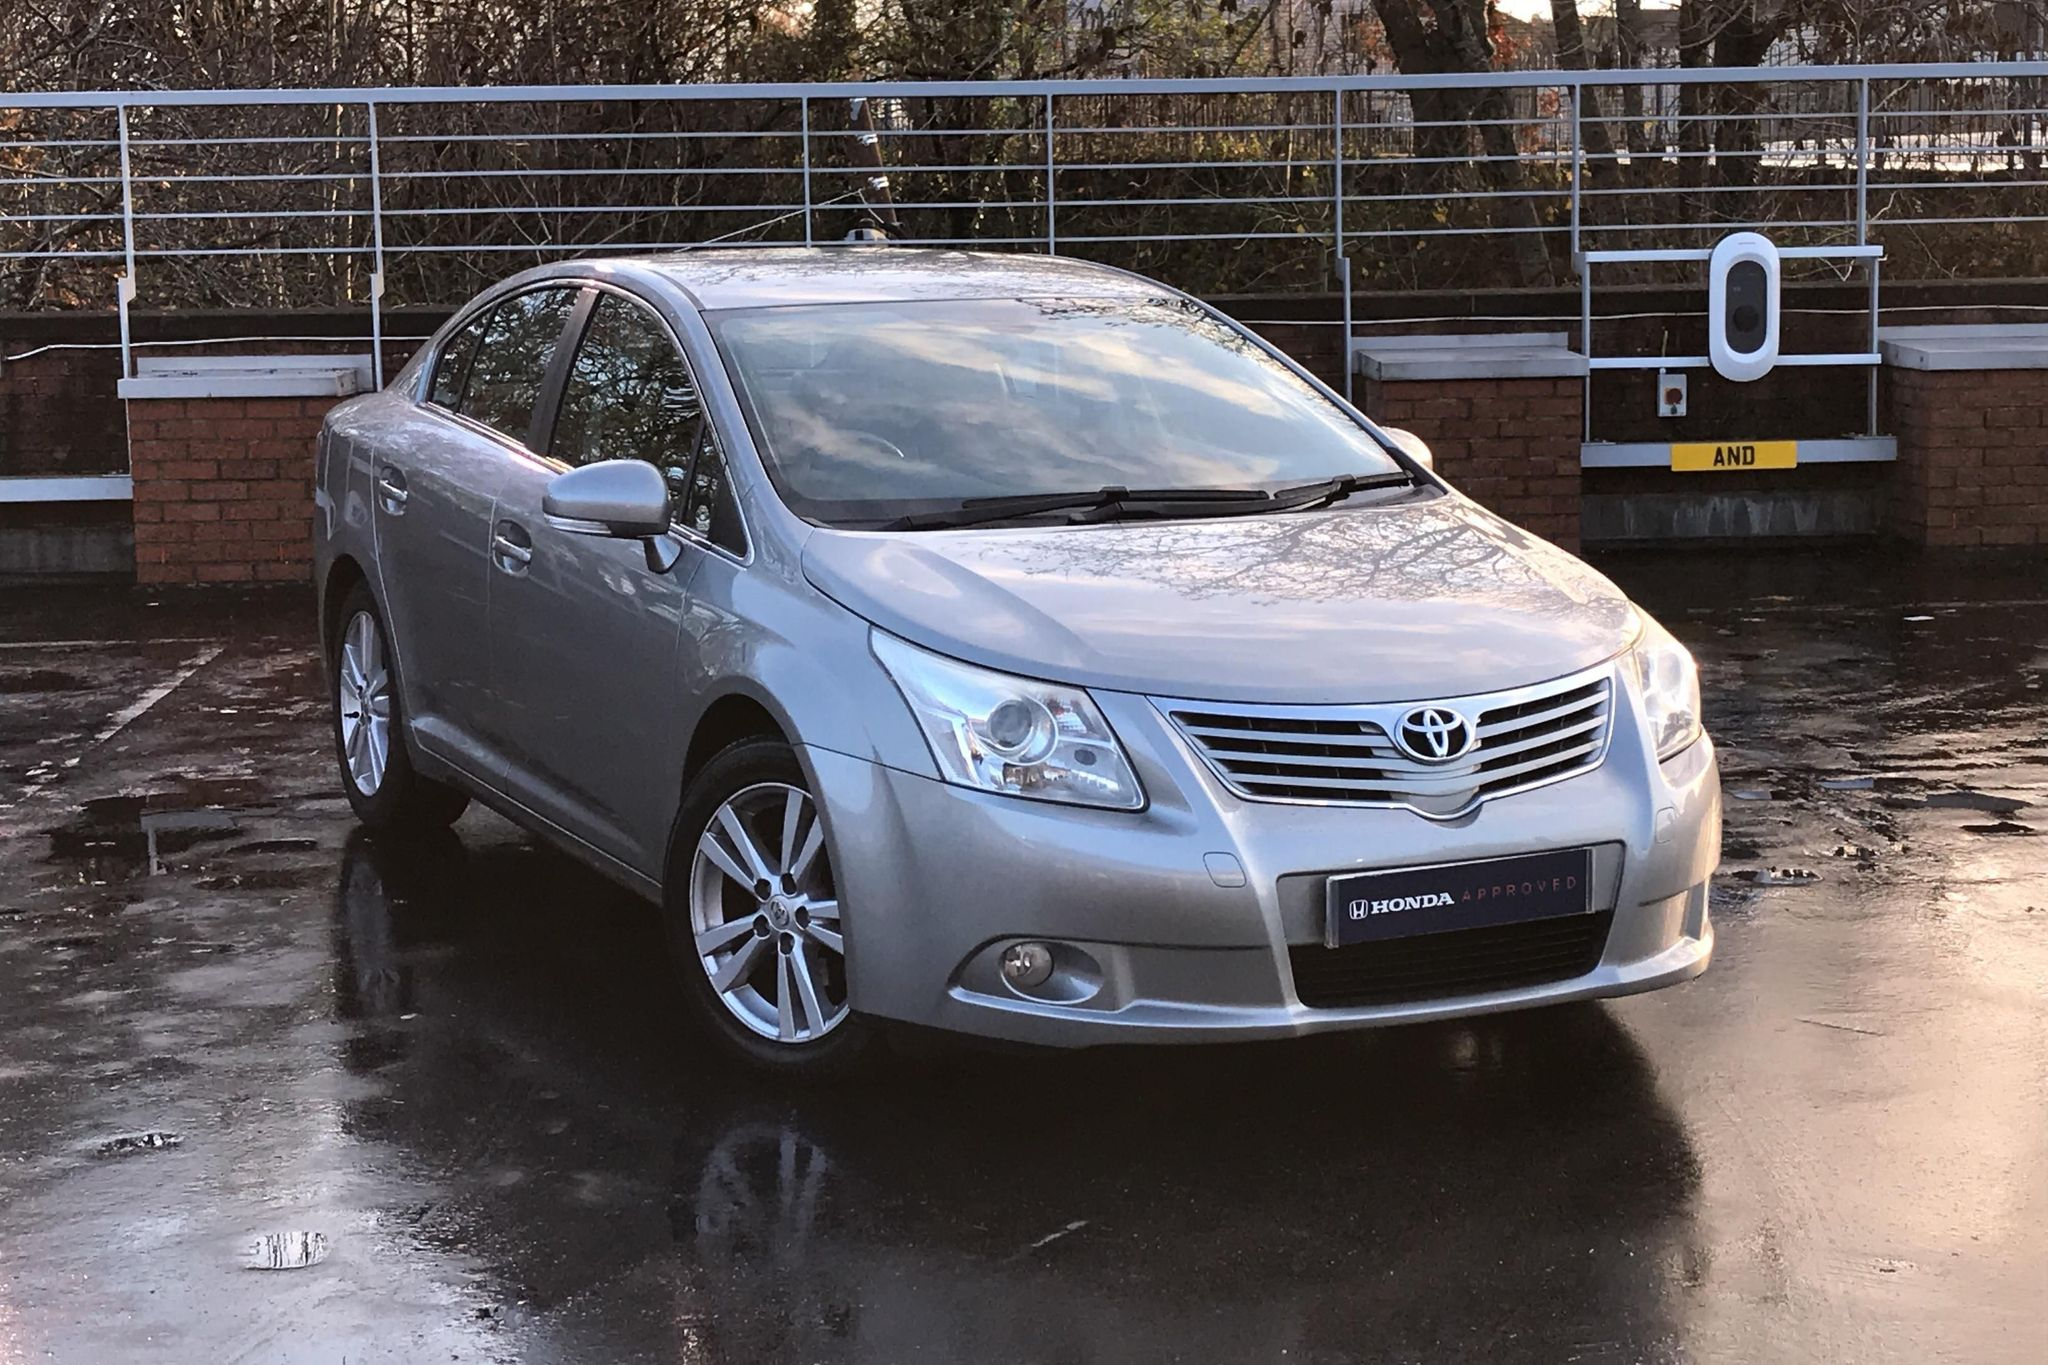 Toyota Avensis 2.0 V-Matic T4 4dr